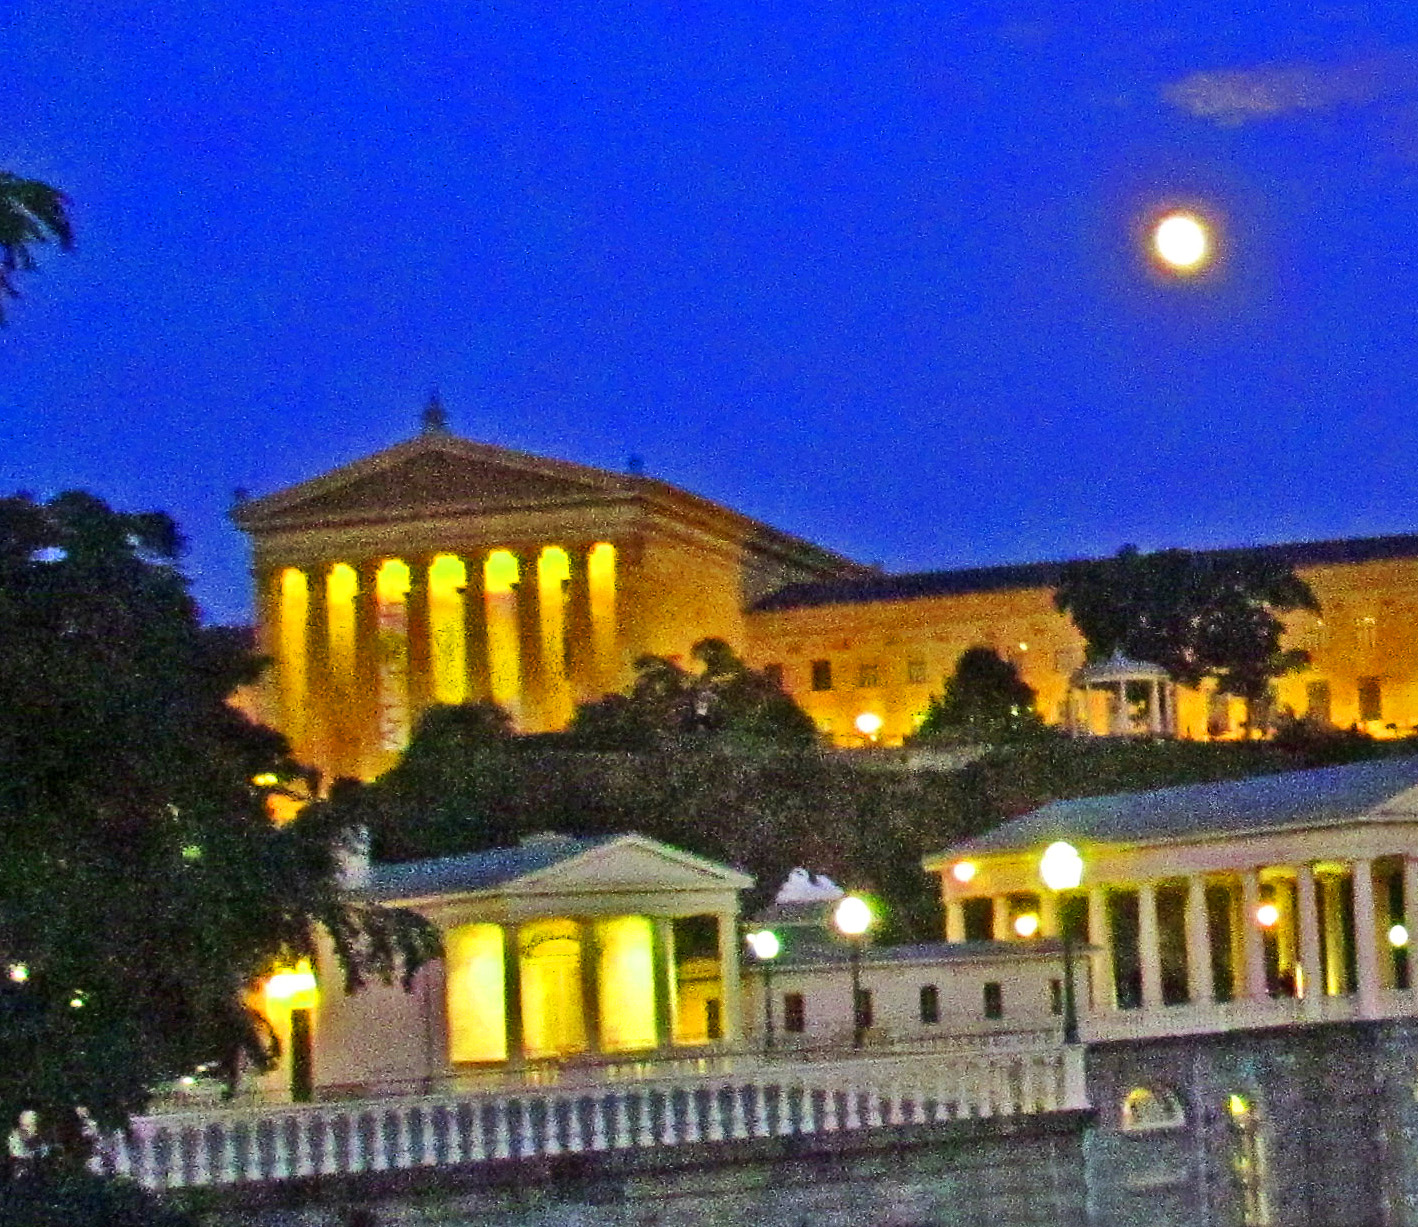 Moon Over Philly Art Museum